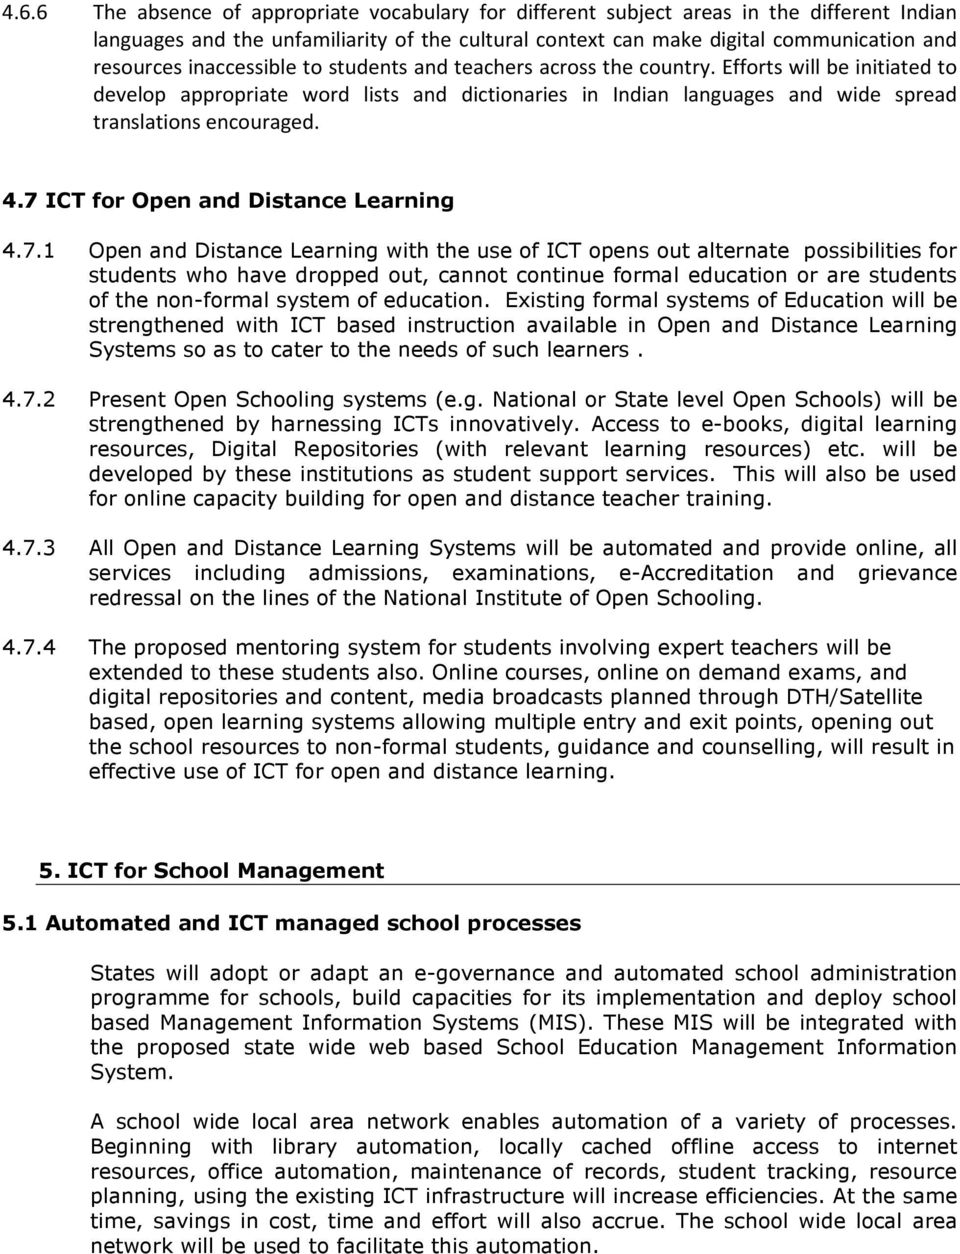 7 ICT for Open and Distance Learning 4.7.1 Open and Distance Learning with the use of ICT opens out alternate possibilities for students who have dropped out, cannot continue formal education or are